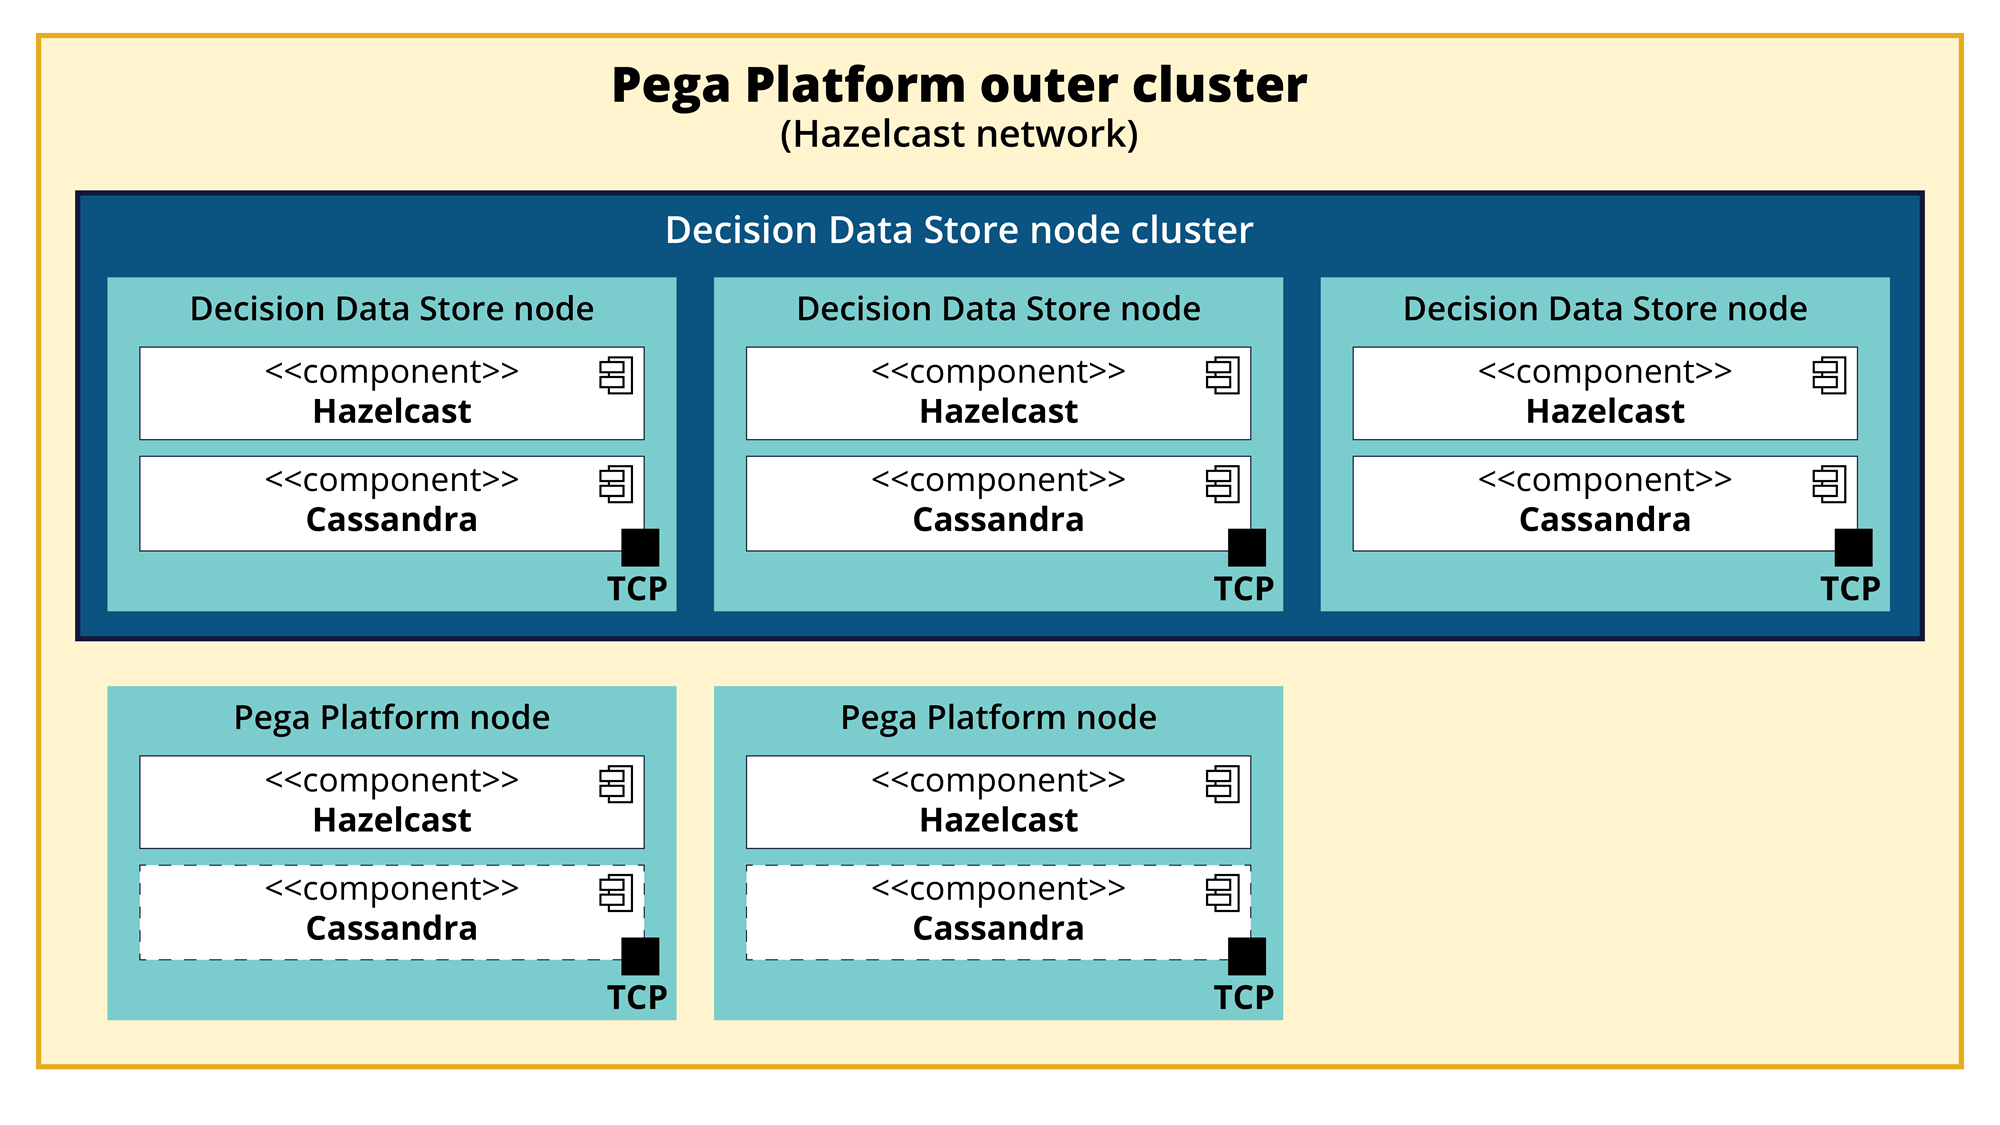 Pega Platform outer cluster consists of the DDS node cluster and other                         nodes that do not belong to the DDS node cluster